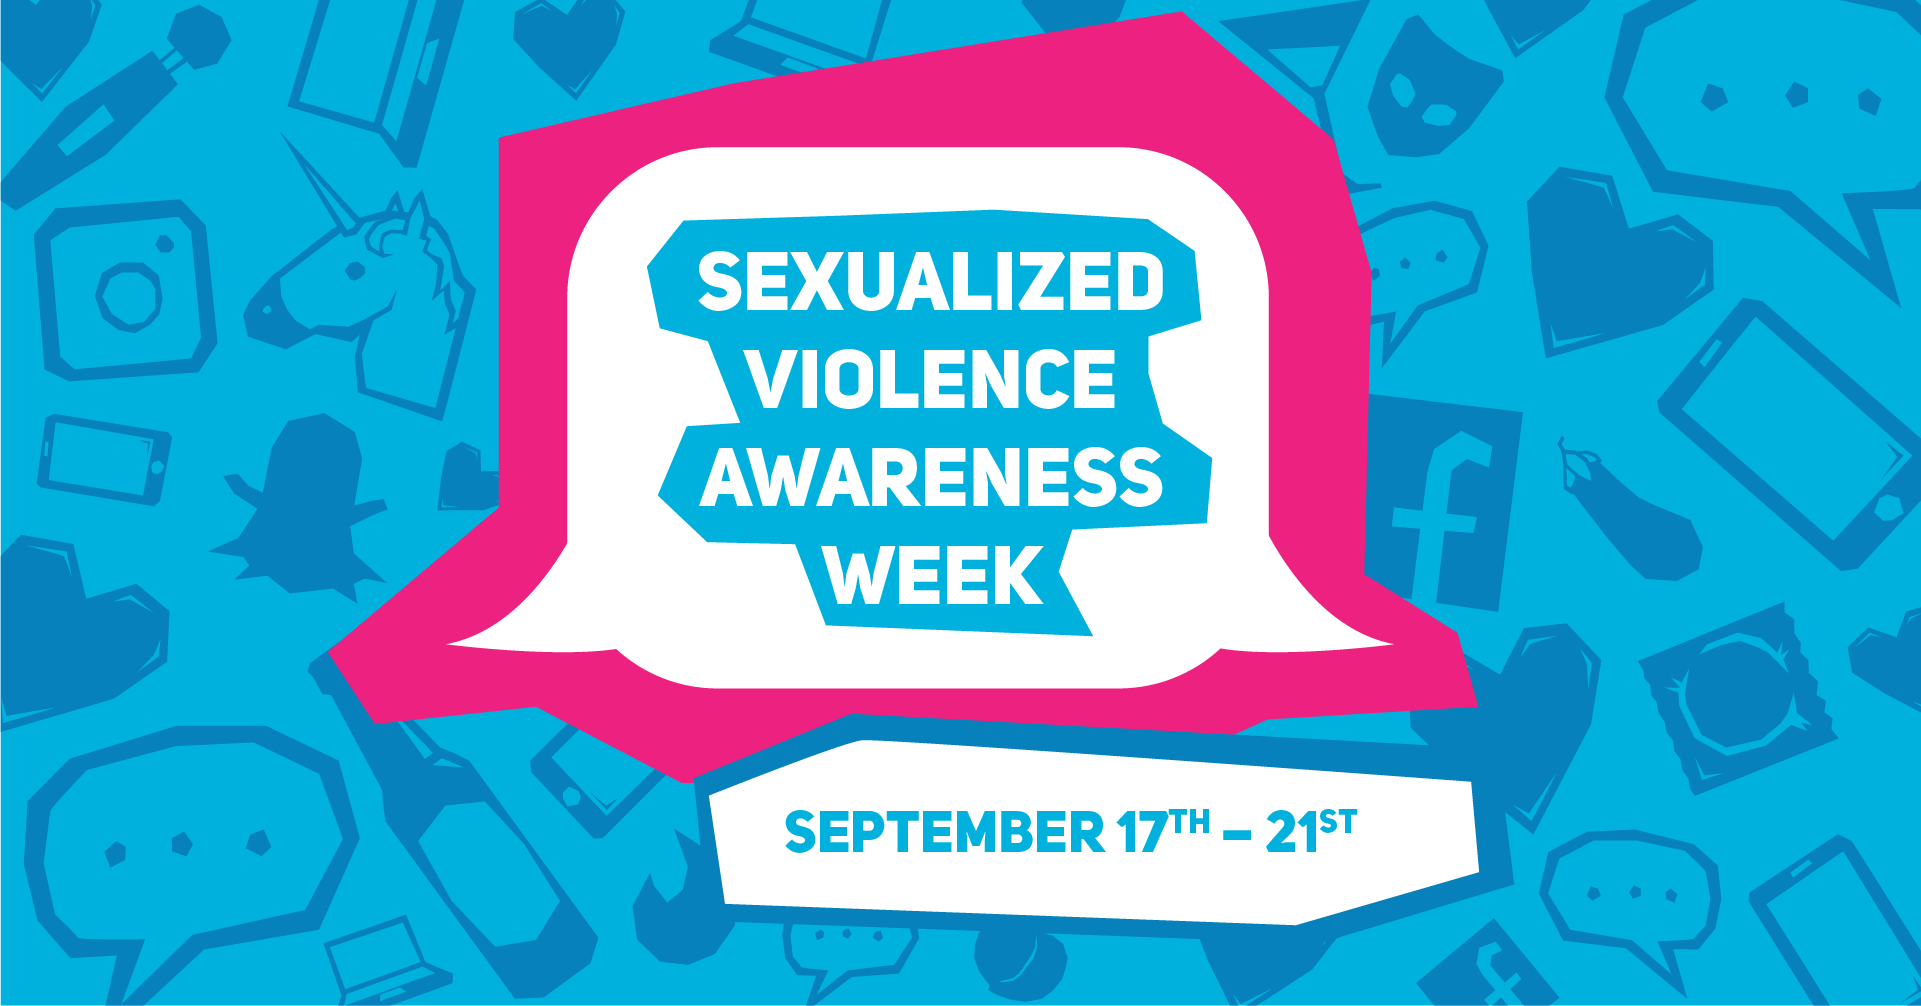 Sexualized Violence Awareness Week